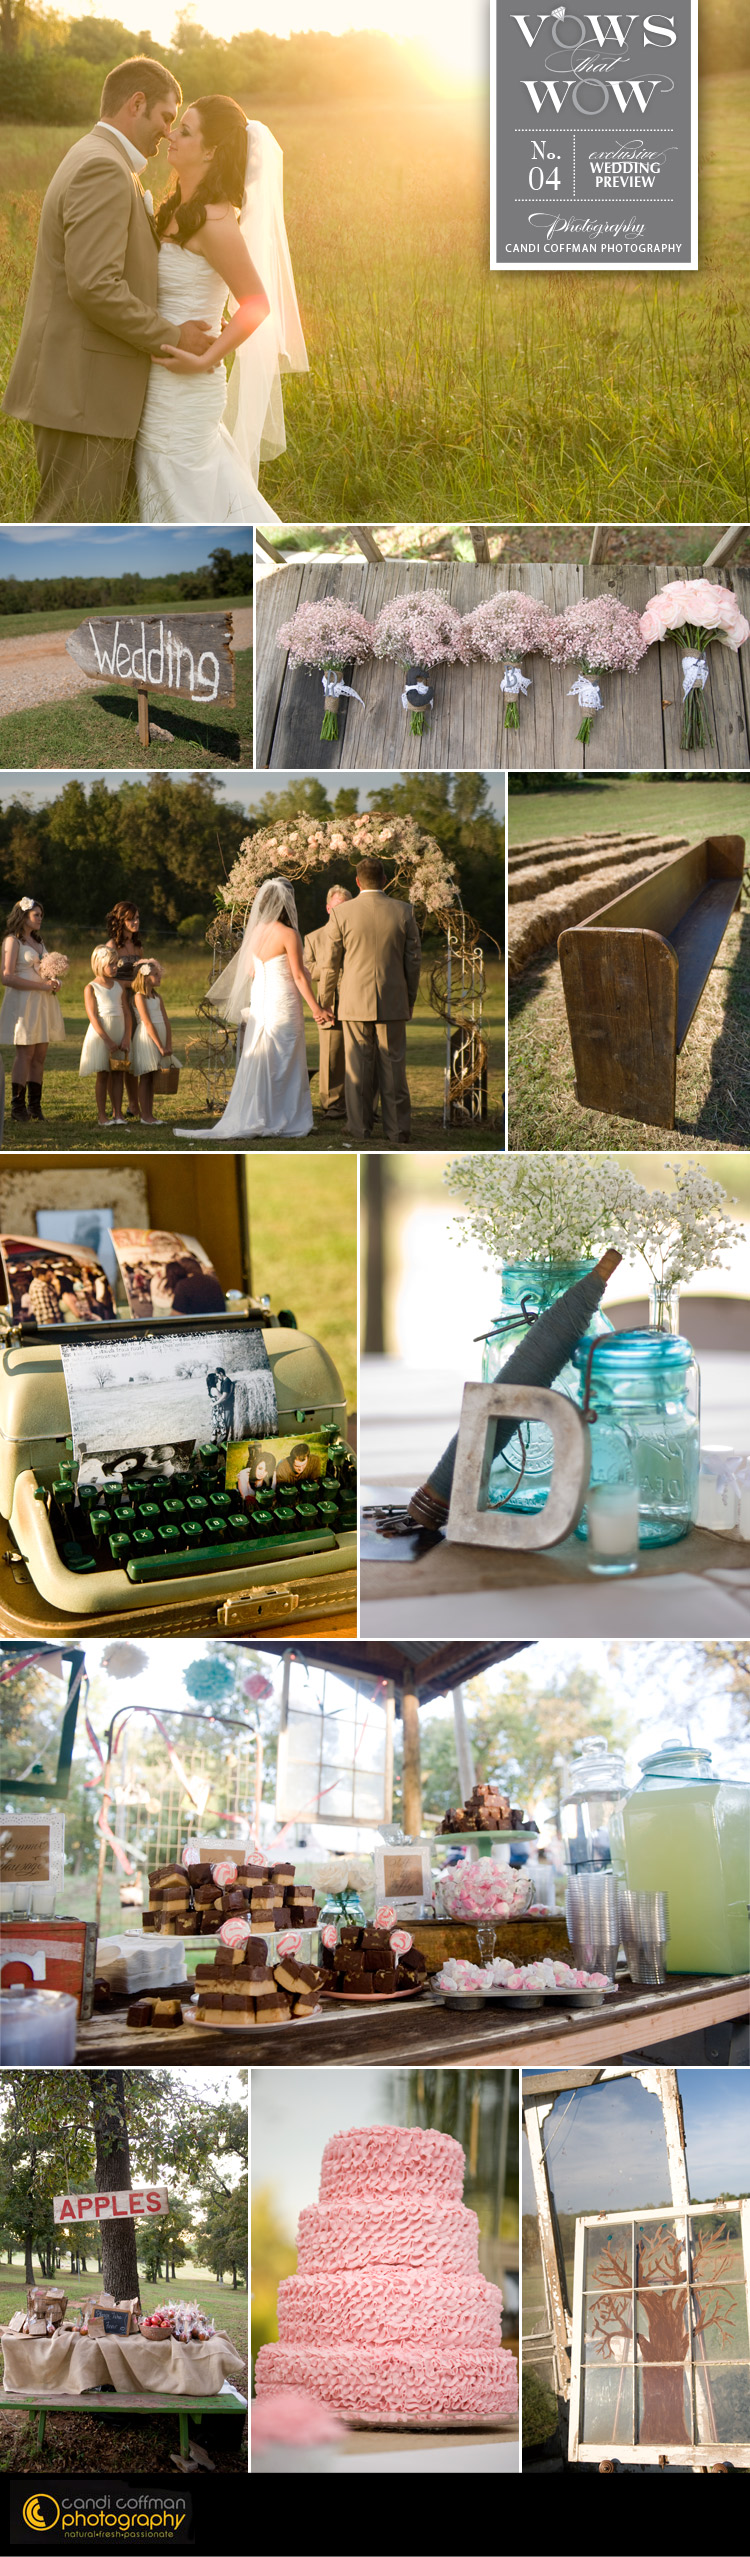 vows that wow – no 4 – candi coffman photography